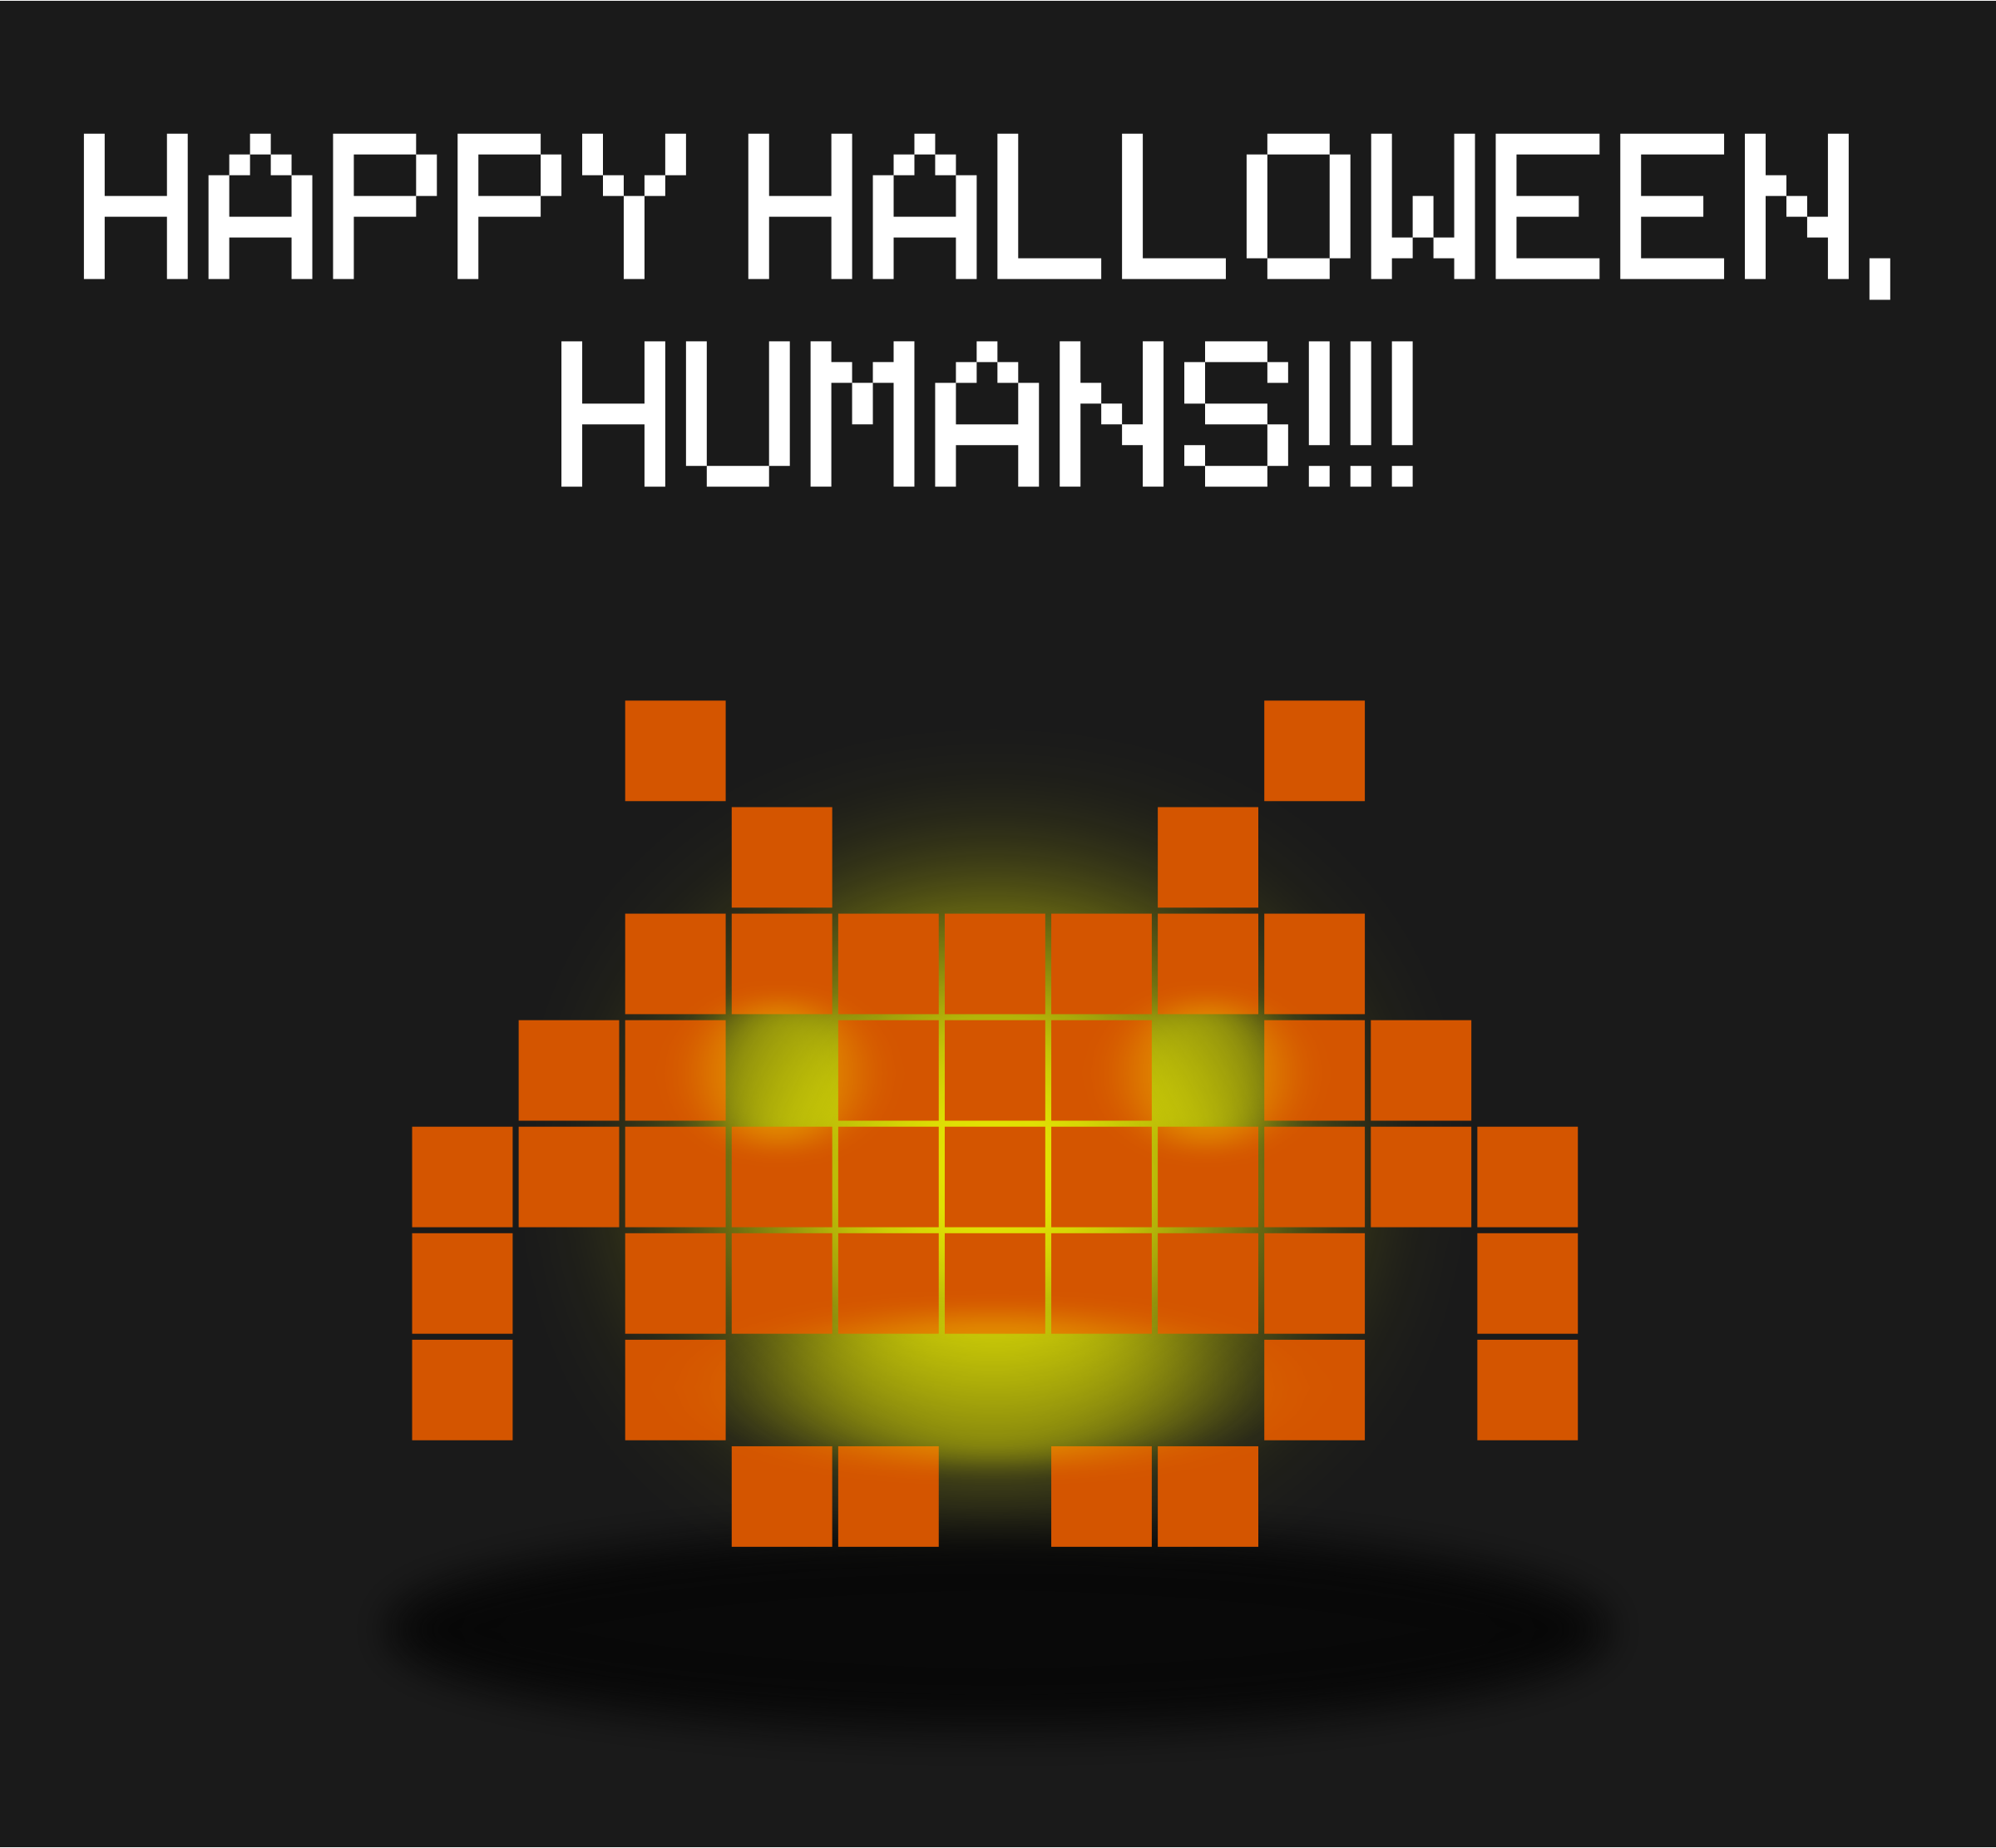 Halloween Invaders by mi_brami